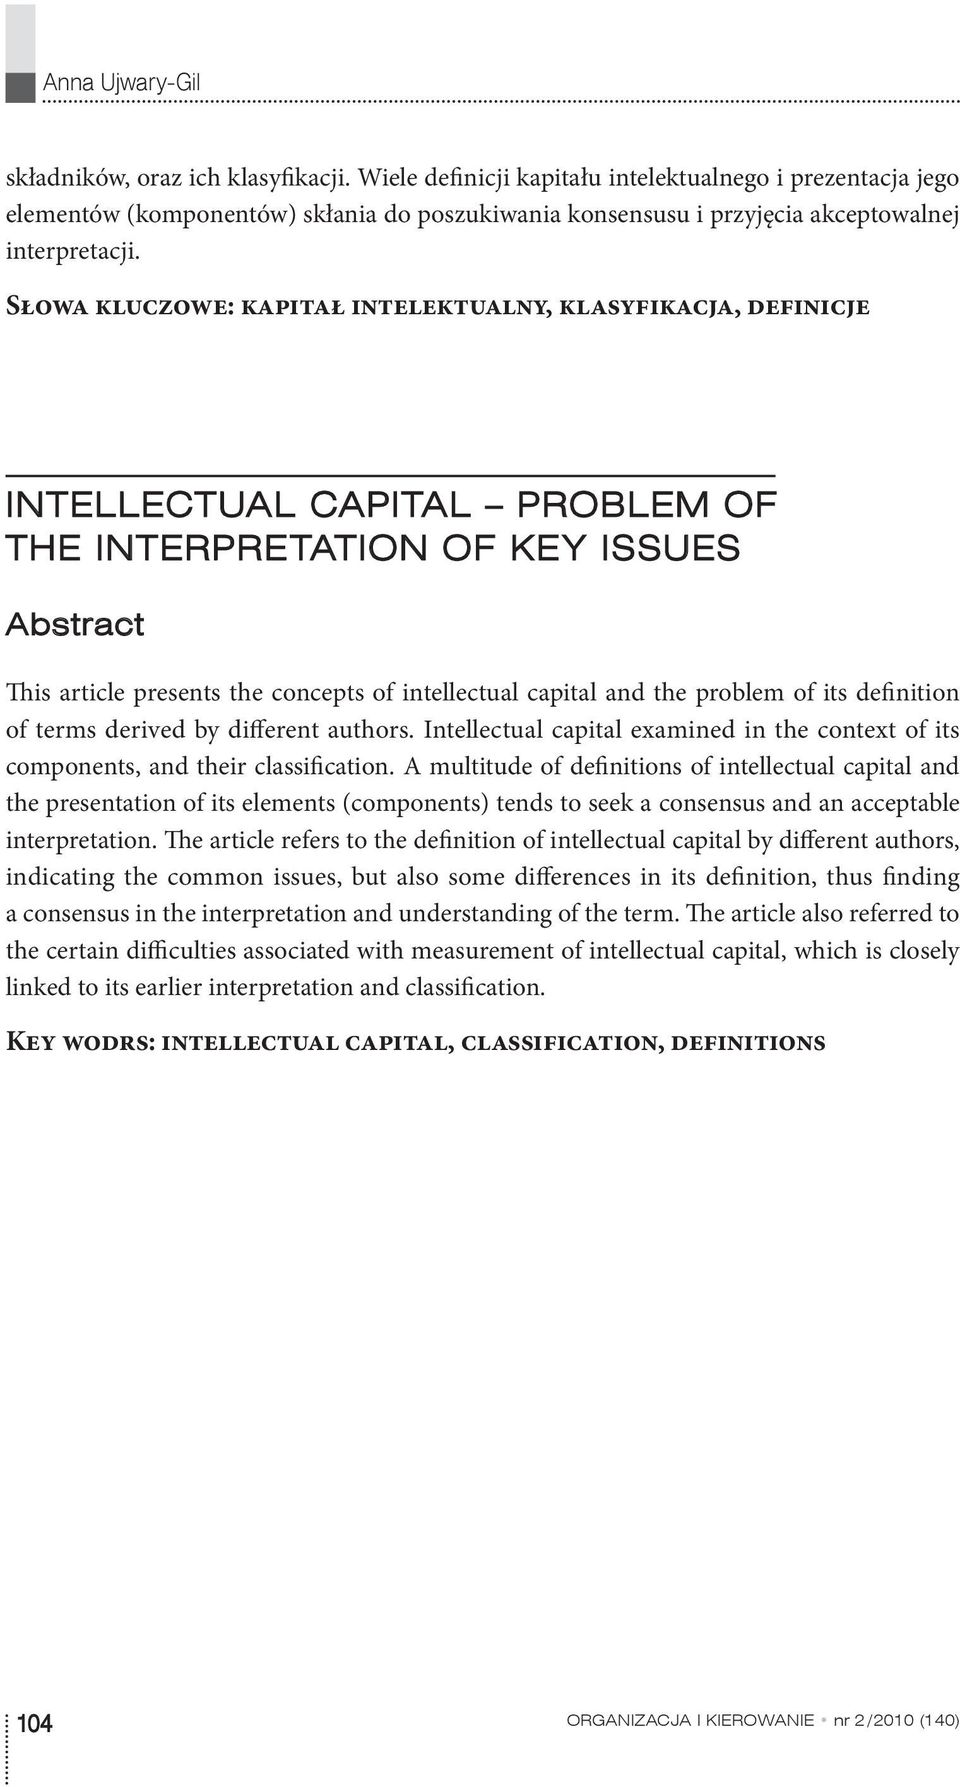 Słowa kluczowe: kapitał intelektualny, klasyfikacja, definicje INTELLECTUAL CAPITAL PROBLEM OF THE INTERPRETATION OF KEY ISSUES Abstract This article presents the concepts of intellectual capital and